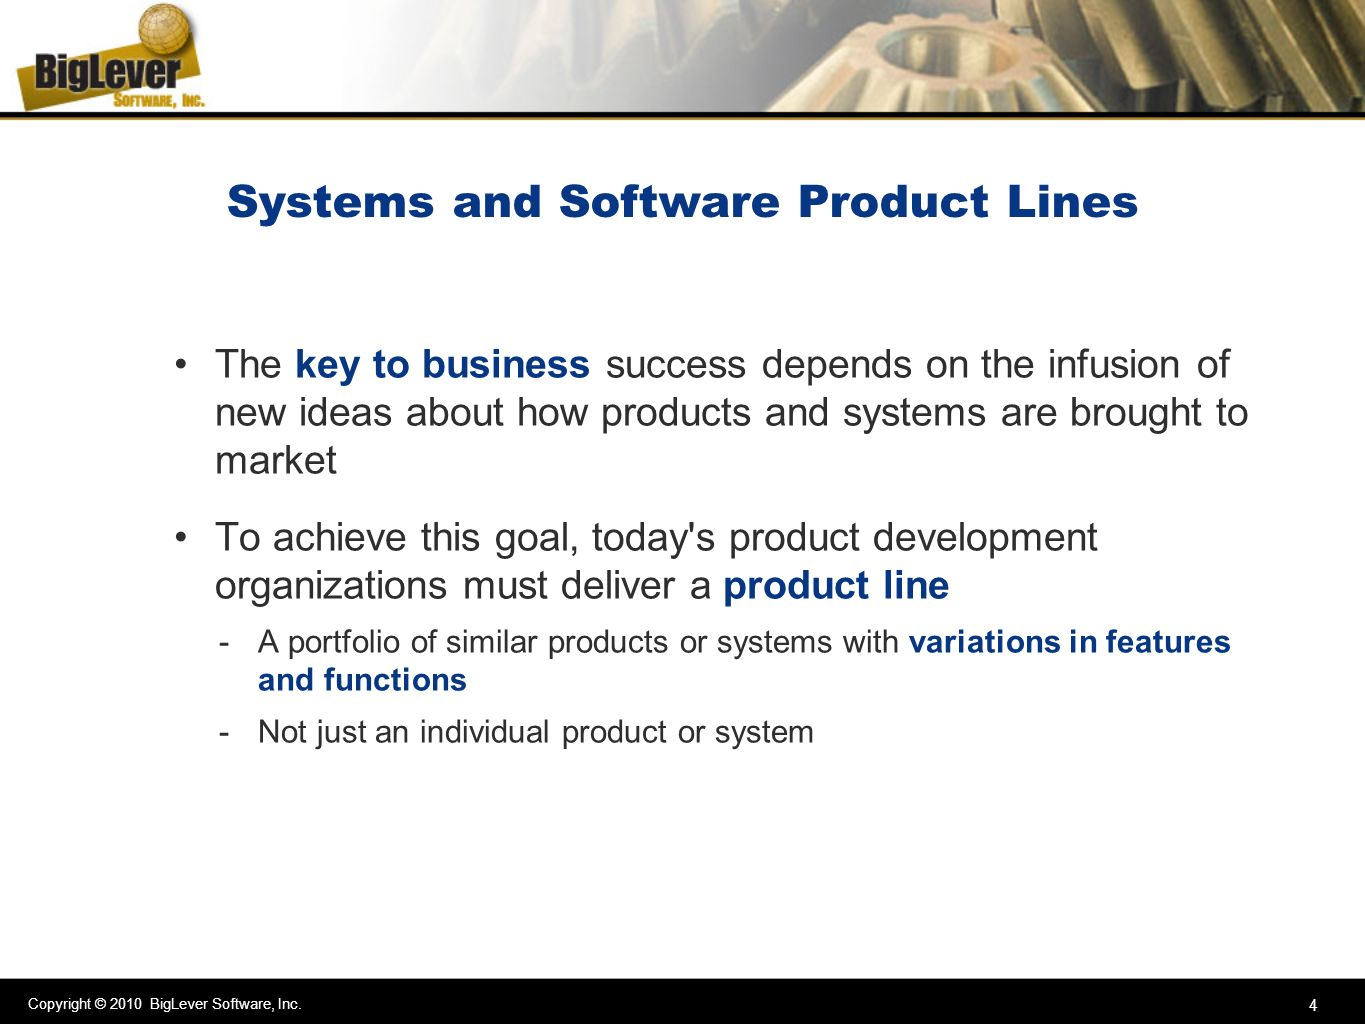 Systems and Software Product Lines